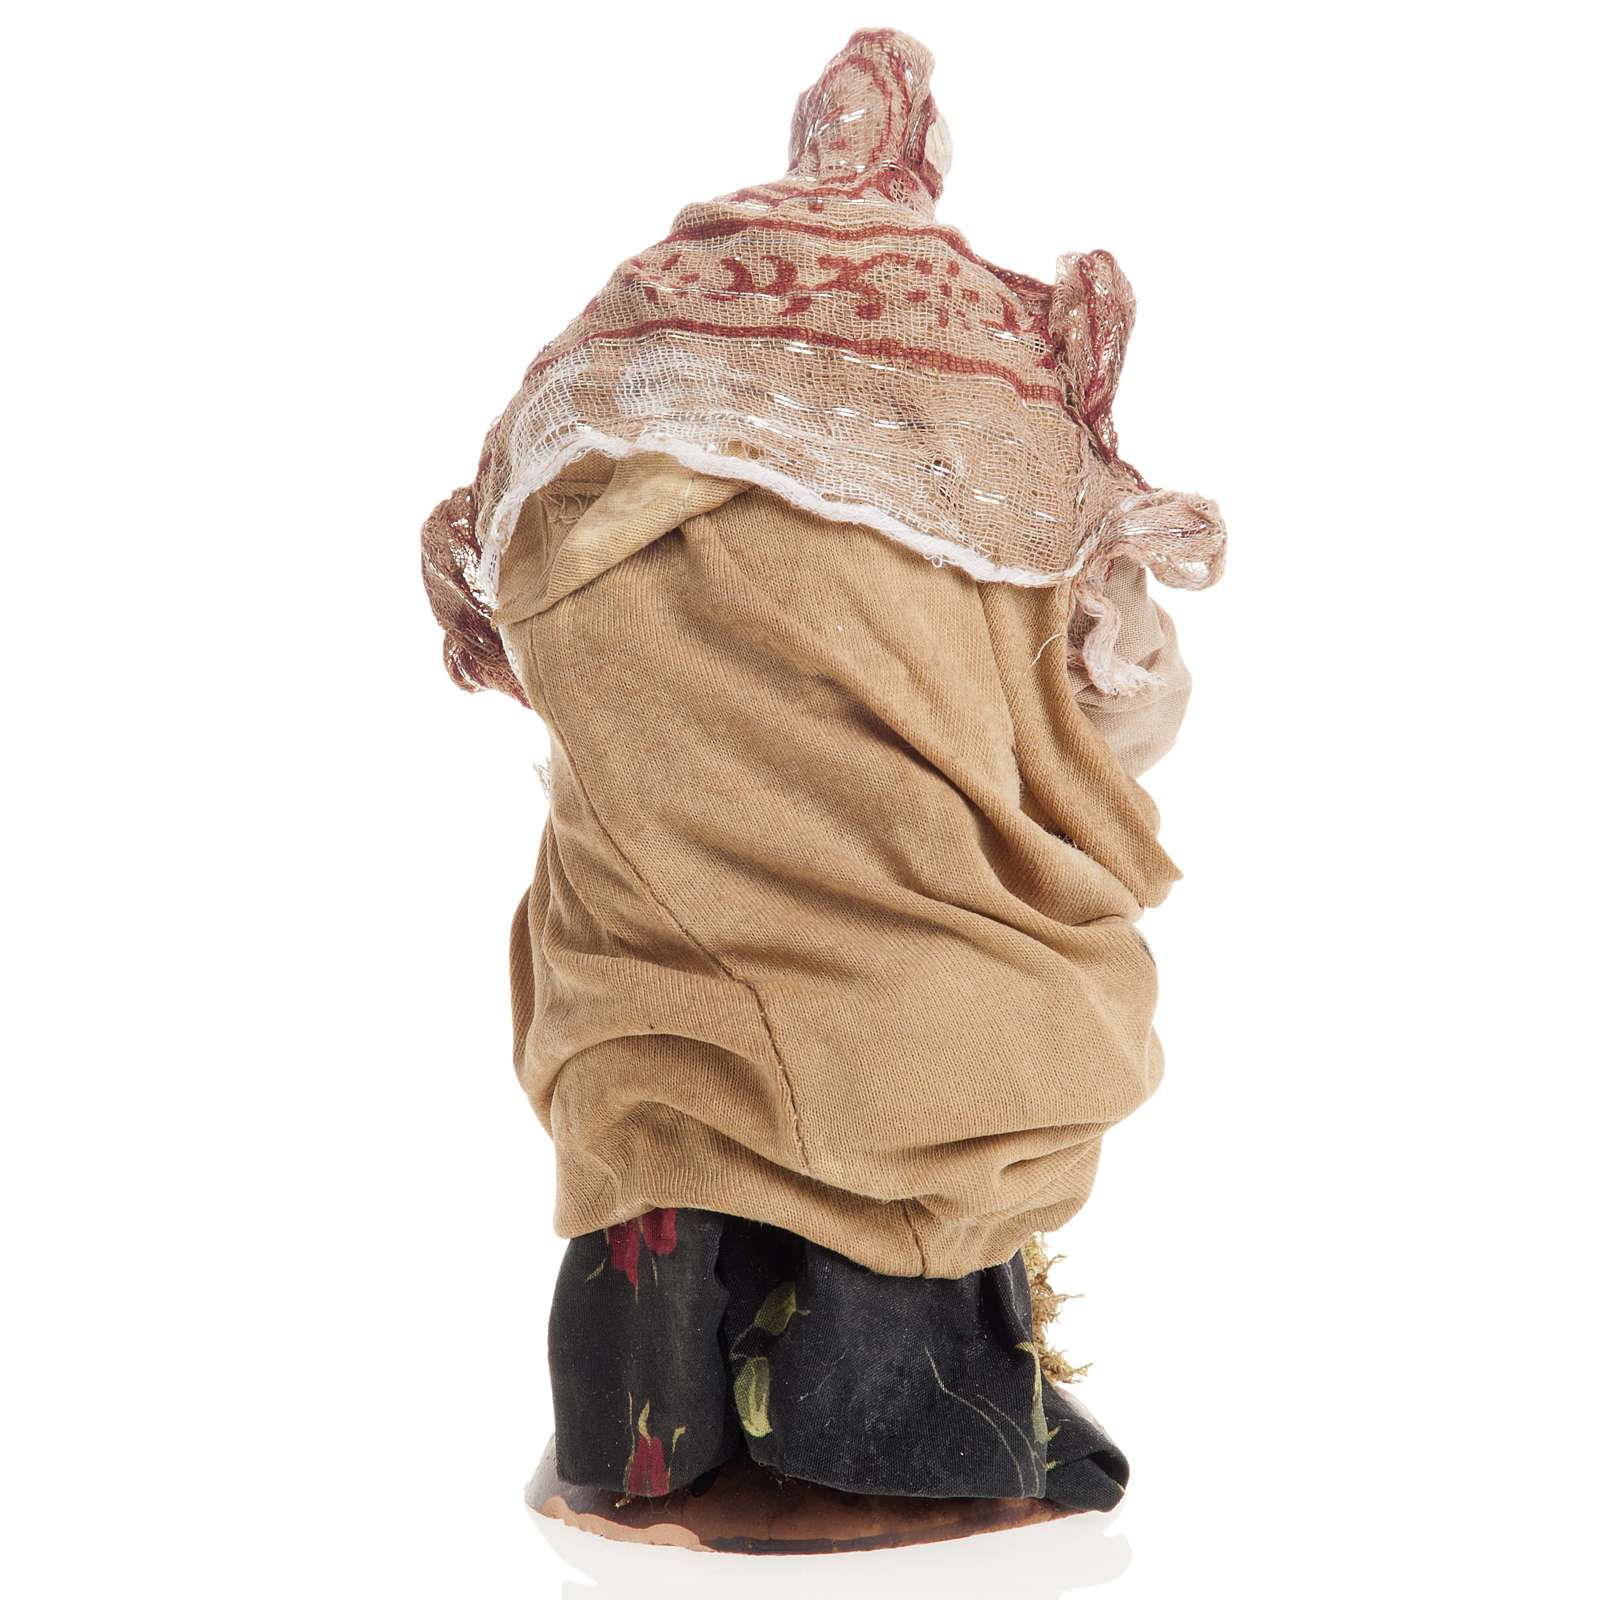 Neapolitan nativity figurine, old washerwoman 18cm 4